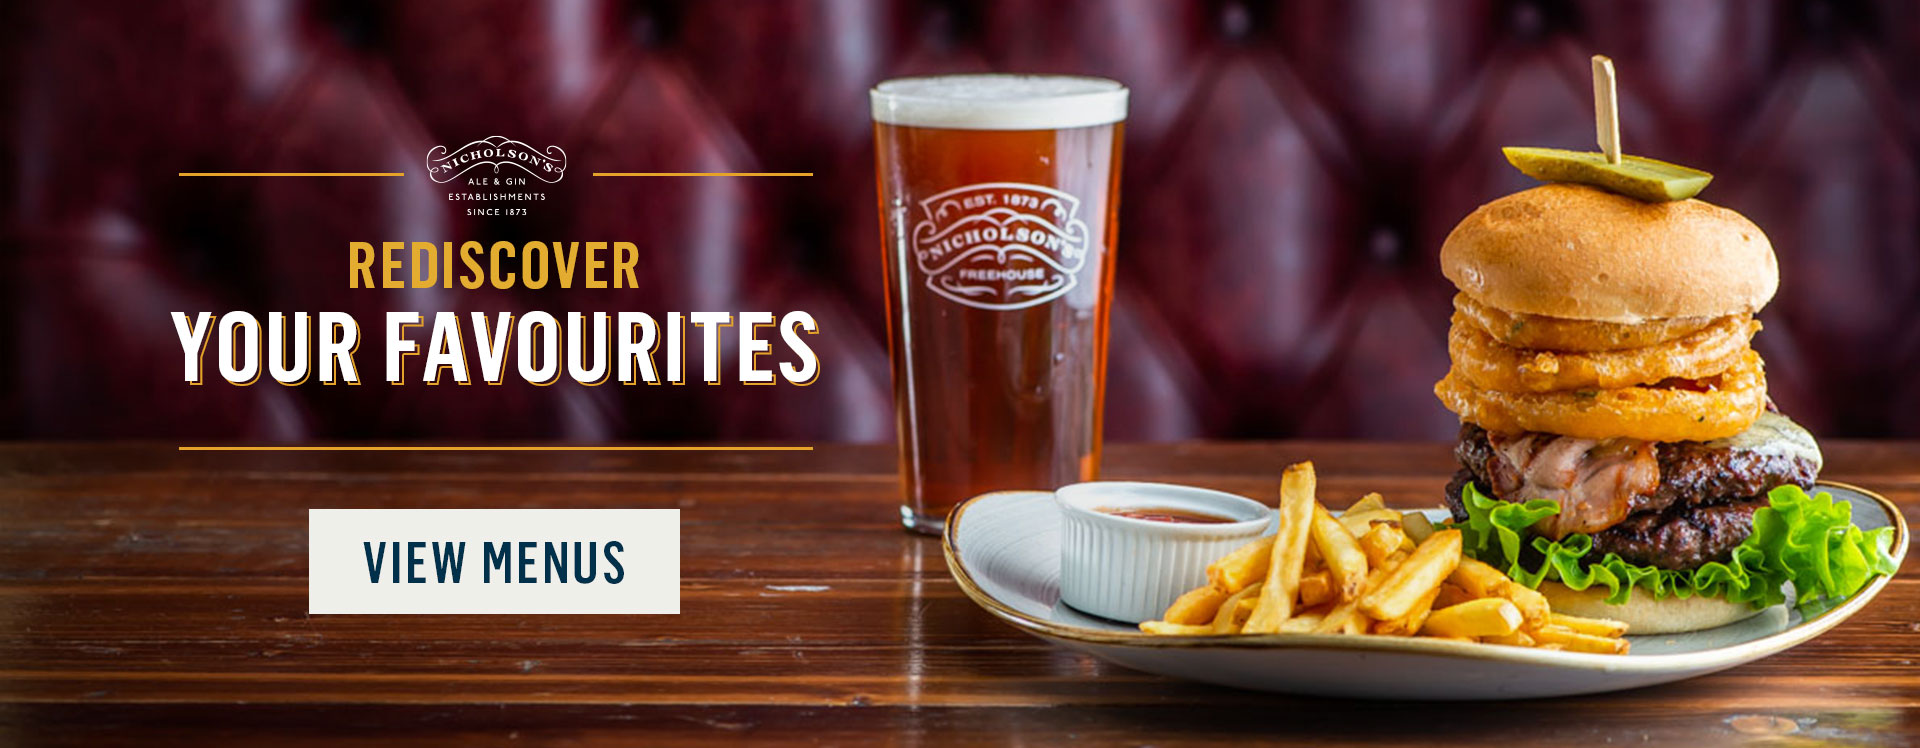 Rediscover your favourites at The Old Thameside Inn